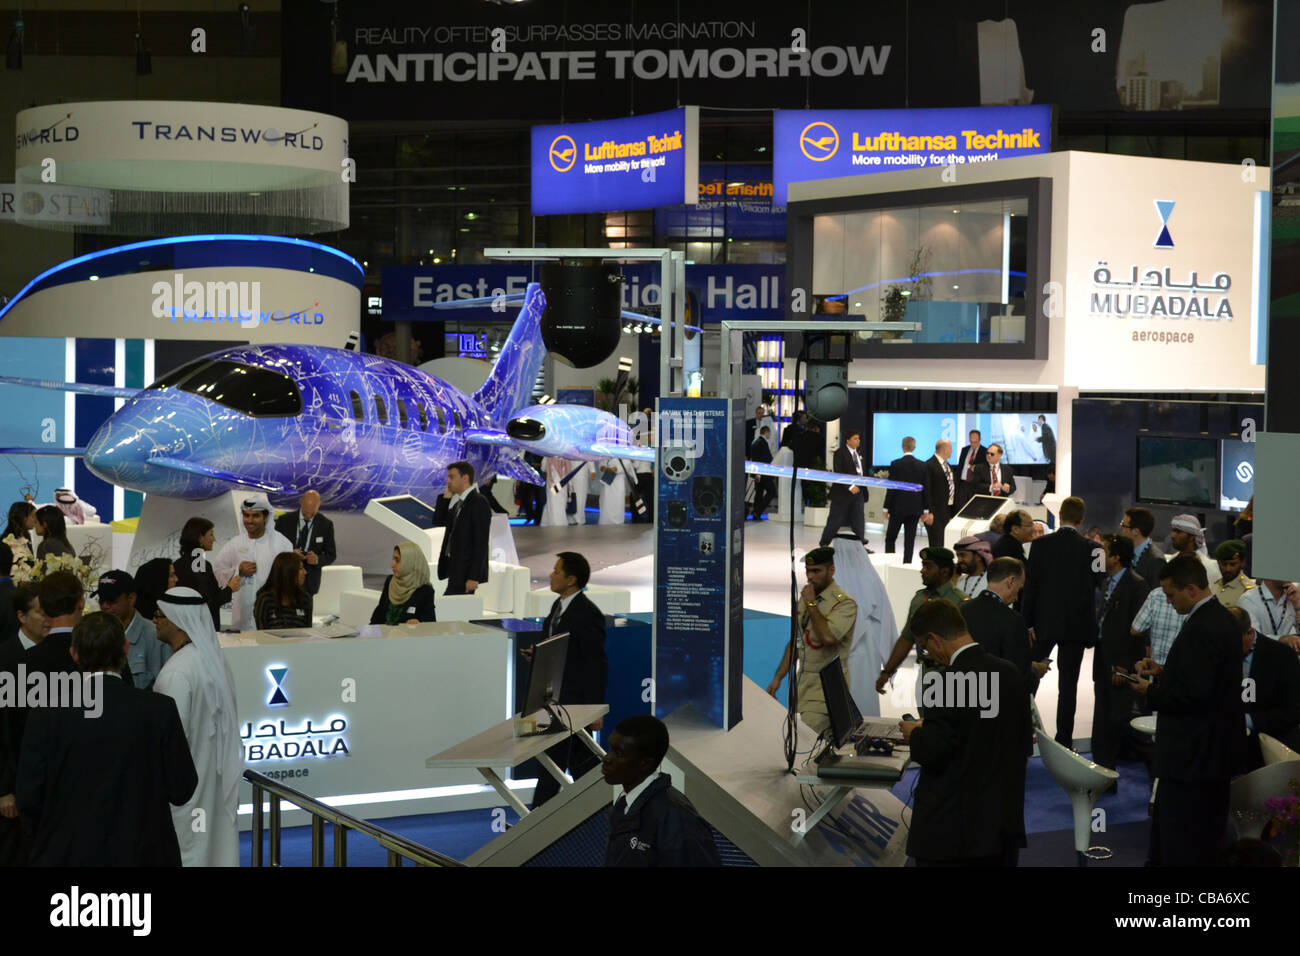 Dubai Airshow November, 2011, main hall, Dubai Expo. - Stock Image